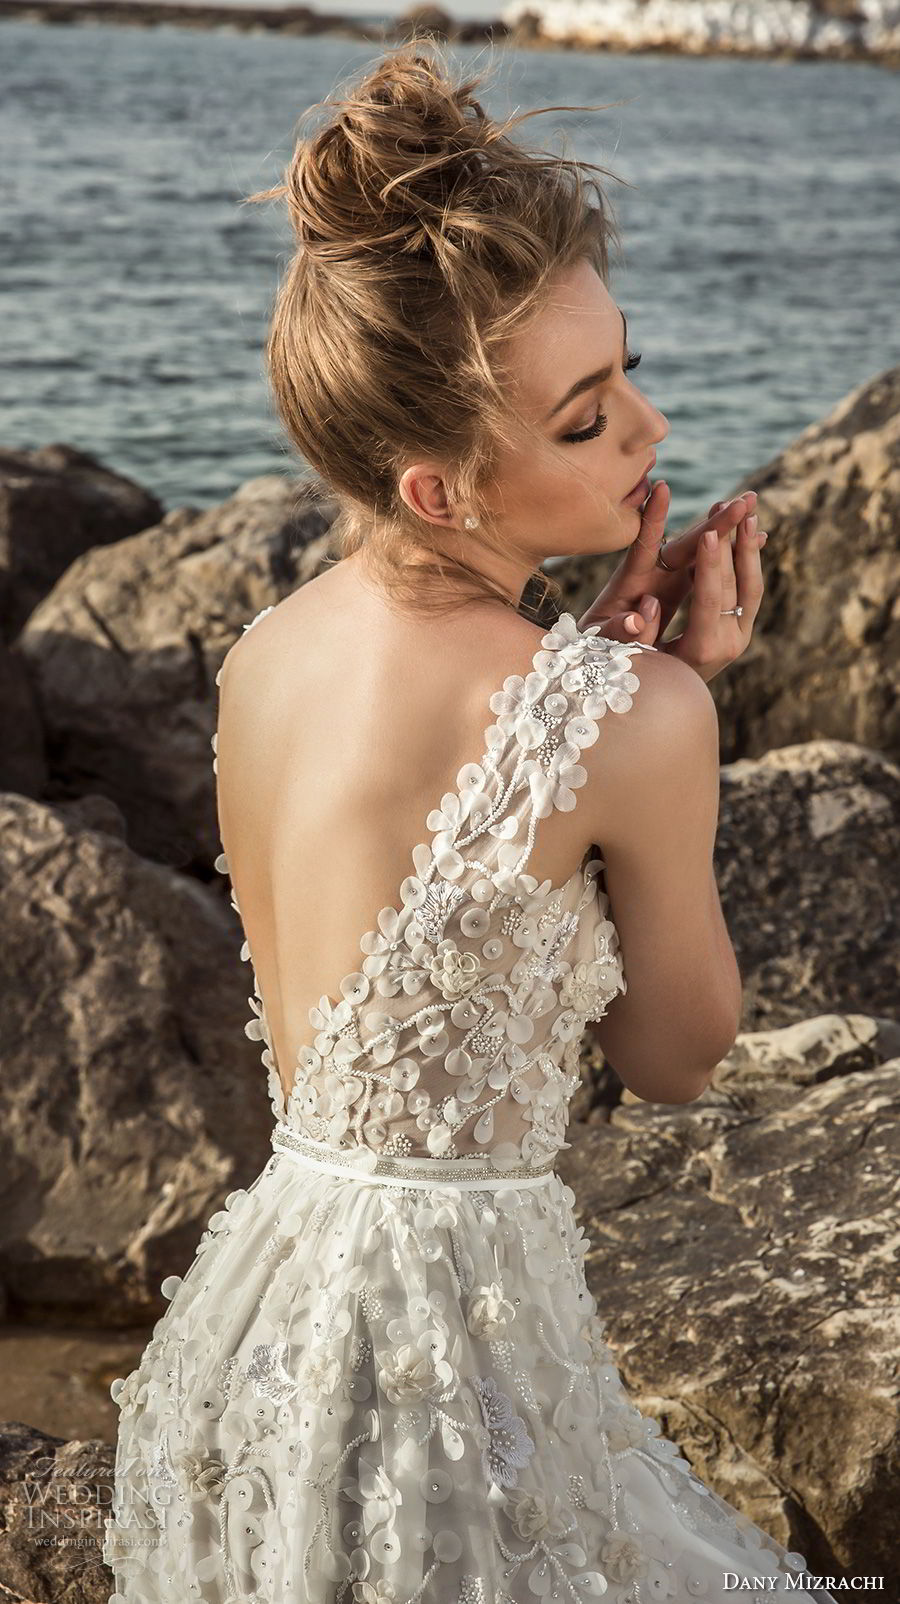 dany mizrachi 2018 bridal sleeveless jewel sweetheart neck full embellishment romantic wedding dress open back (22) bv